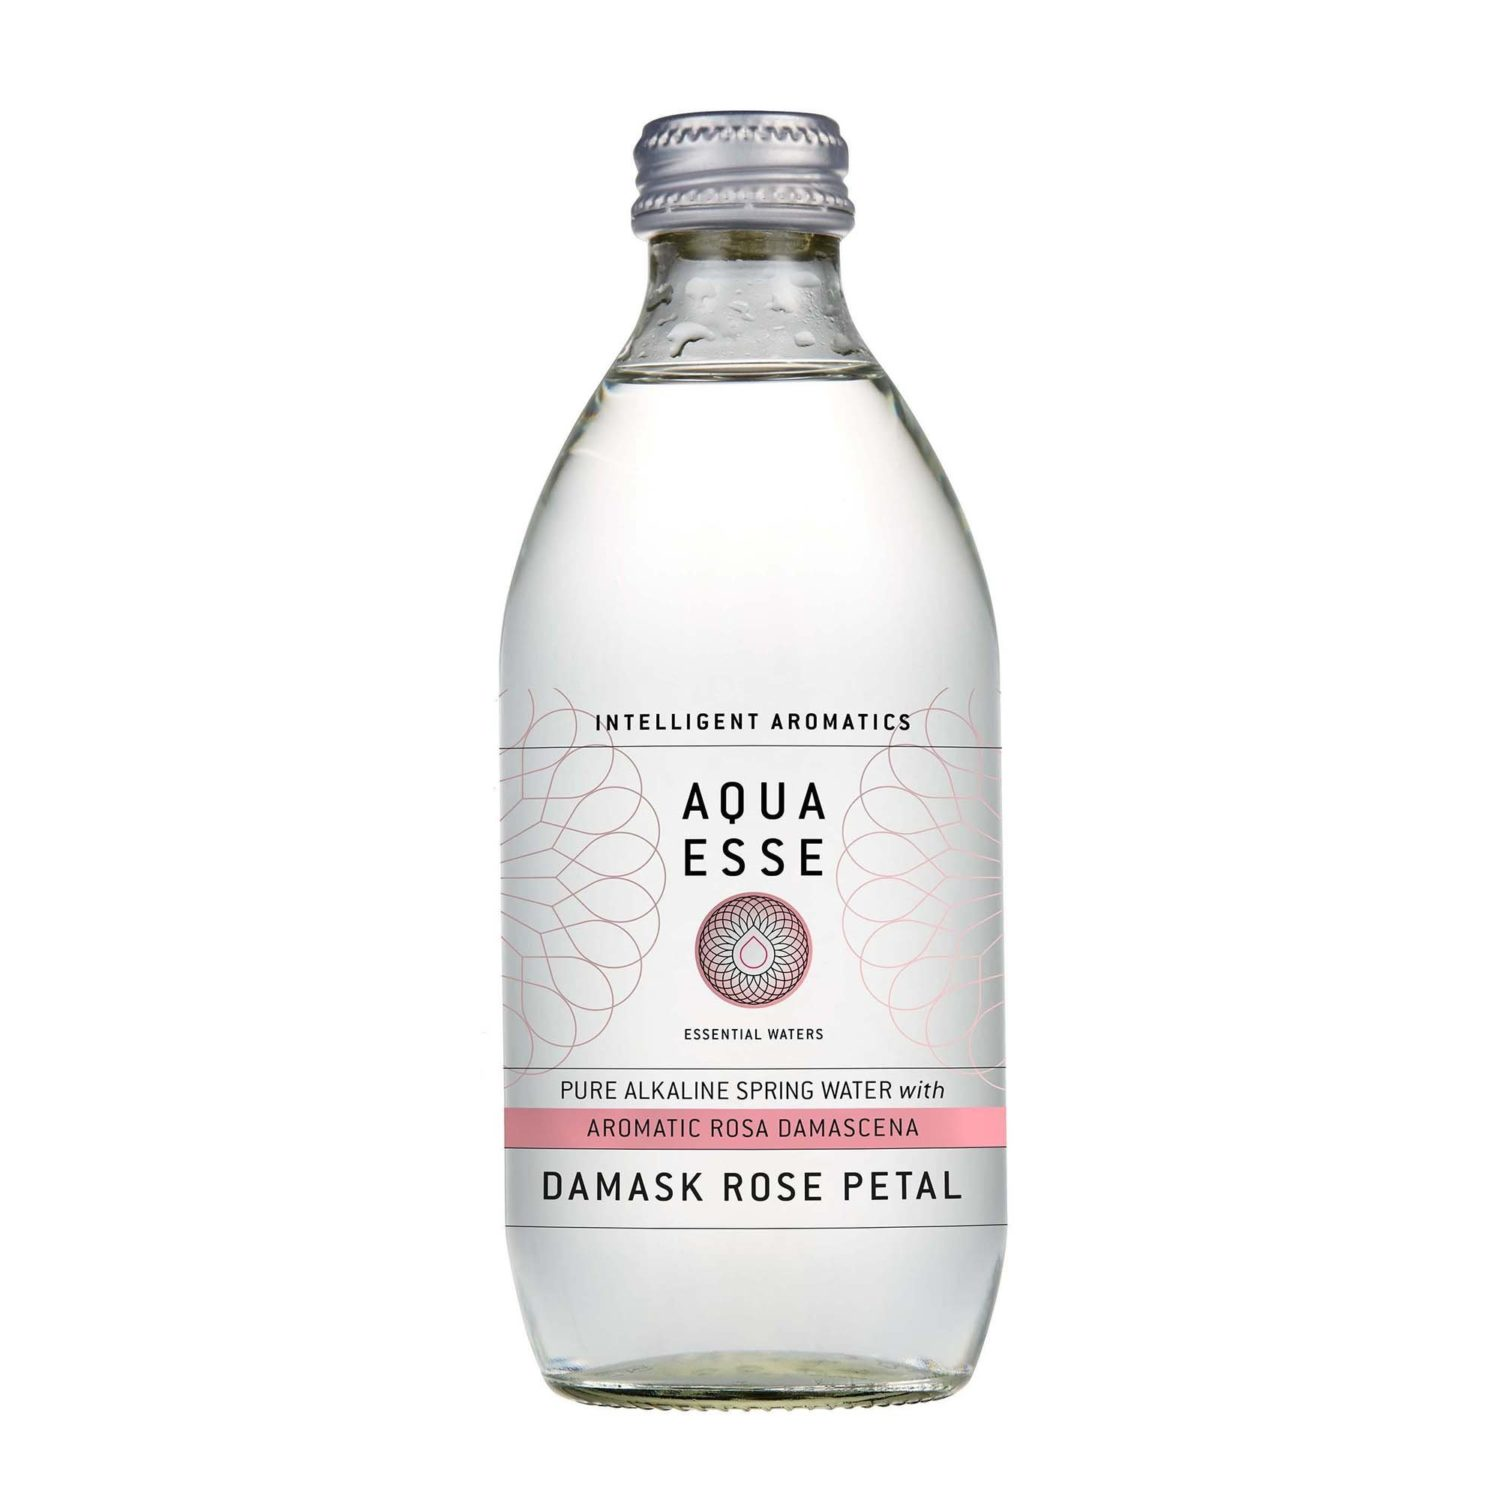 AQUA ESSE Damask rose petal Watershop